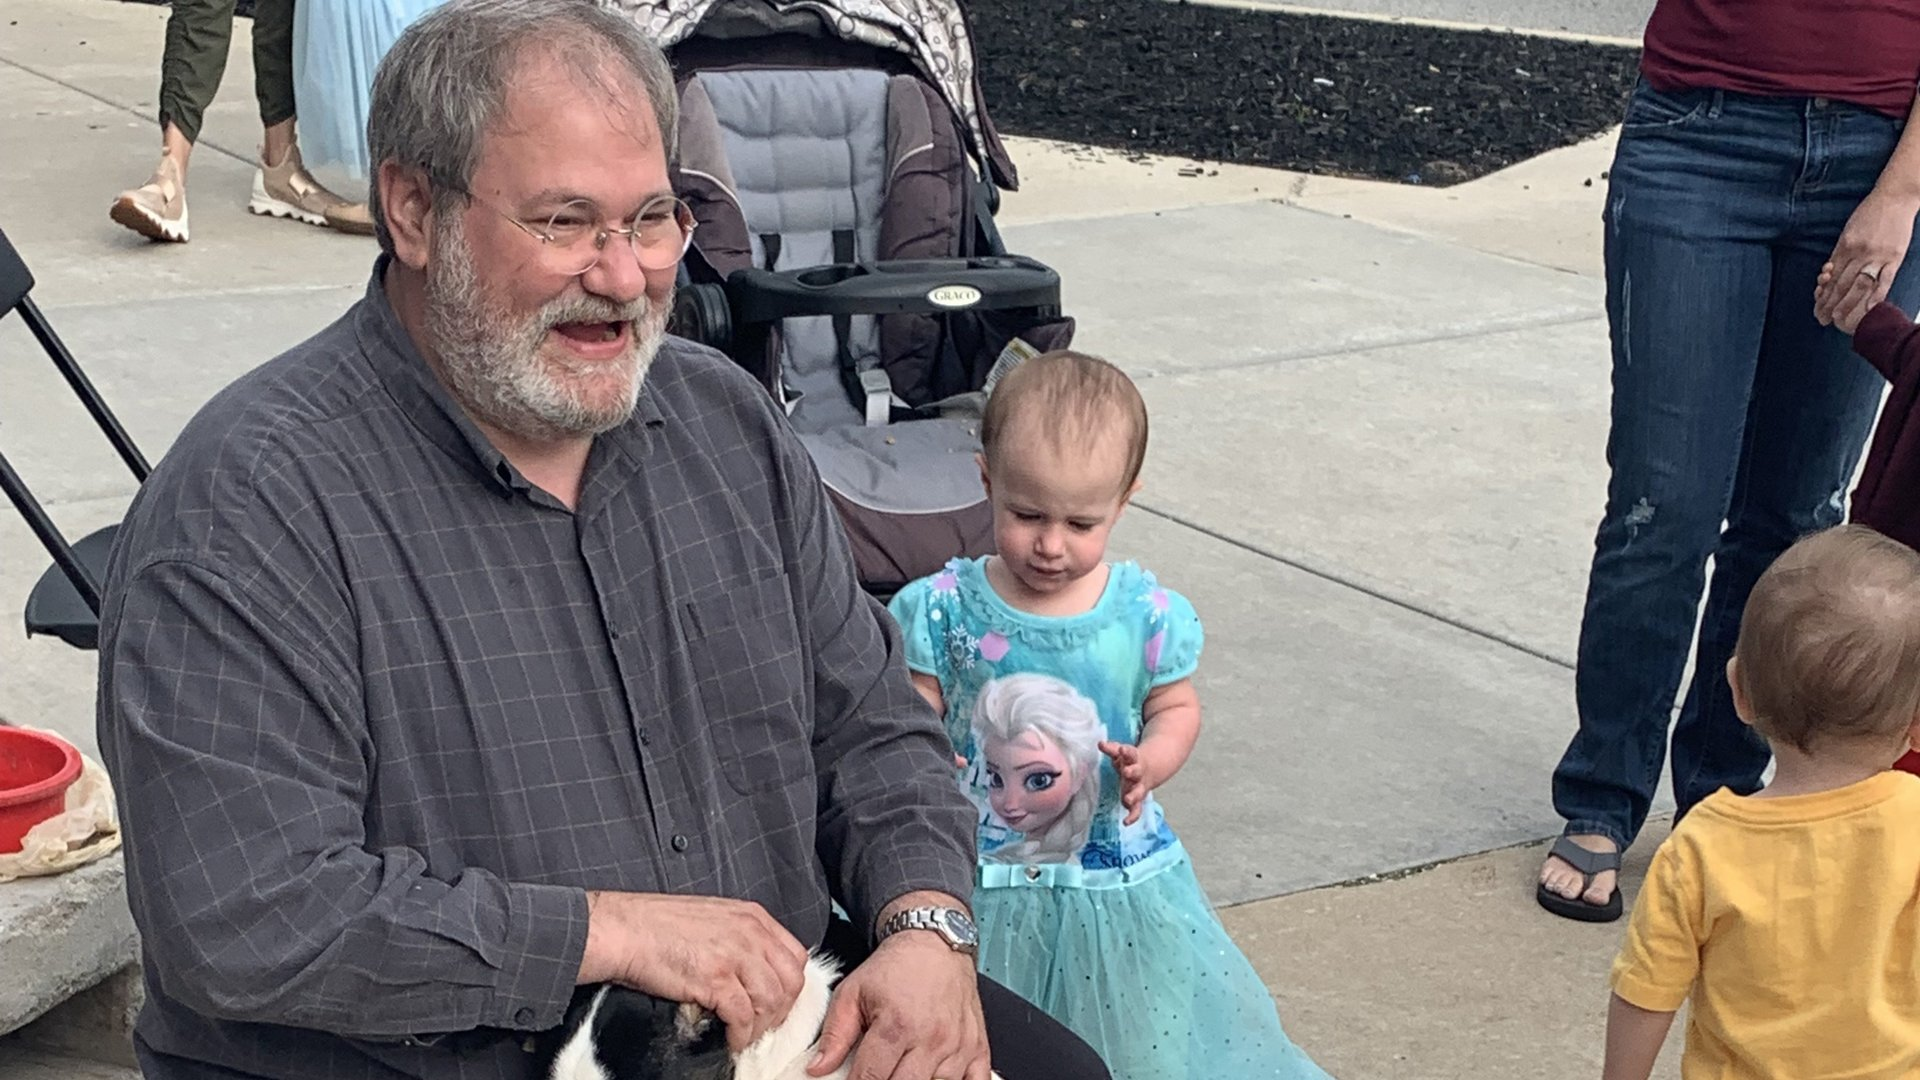 Sal Anello and his granddaughter Chloe are seen in a photo released by the Wiegand Family and distributed by CNN.